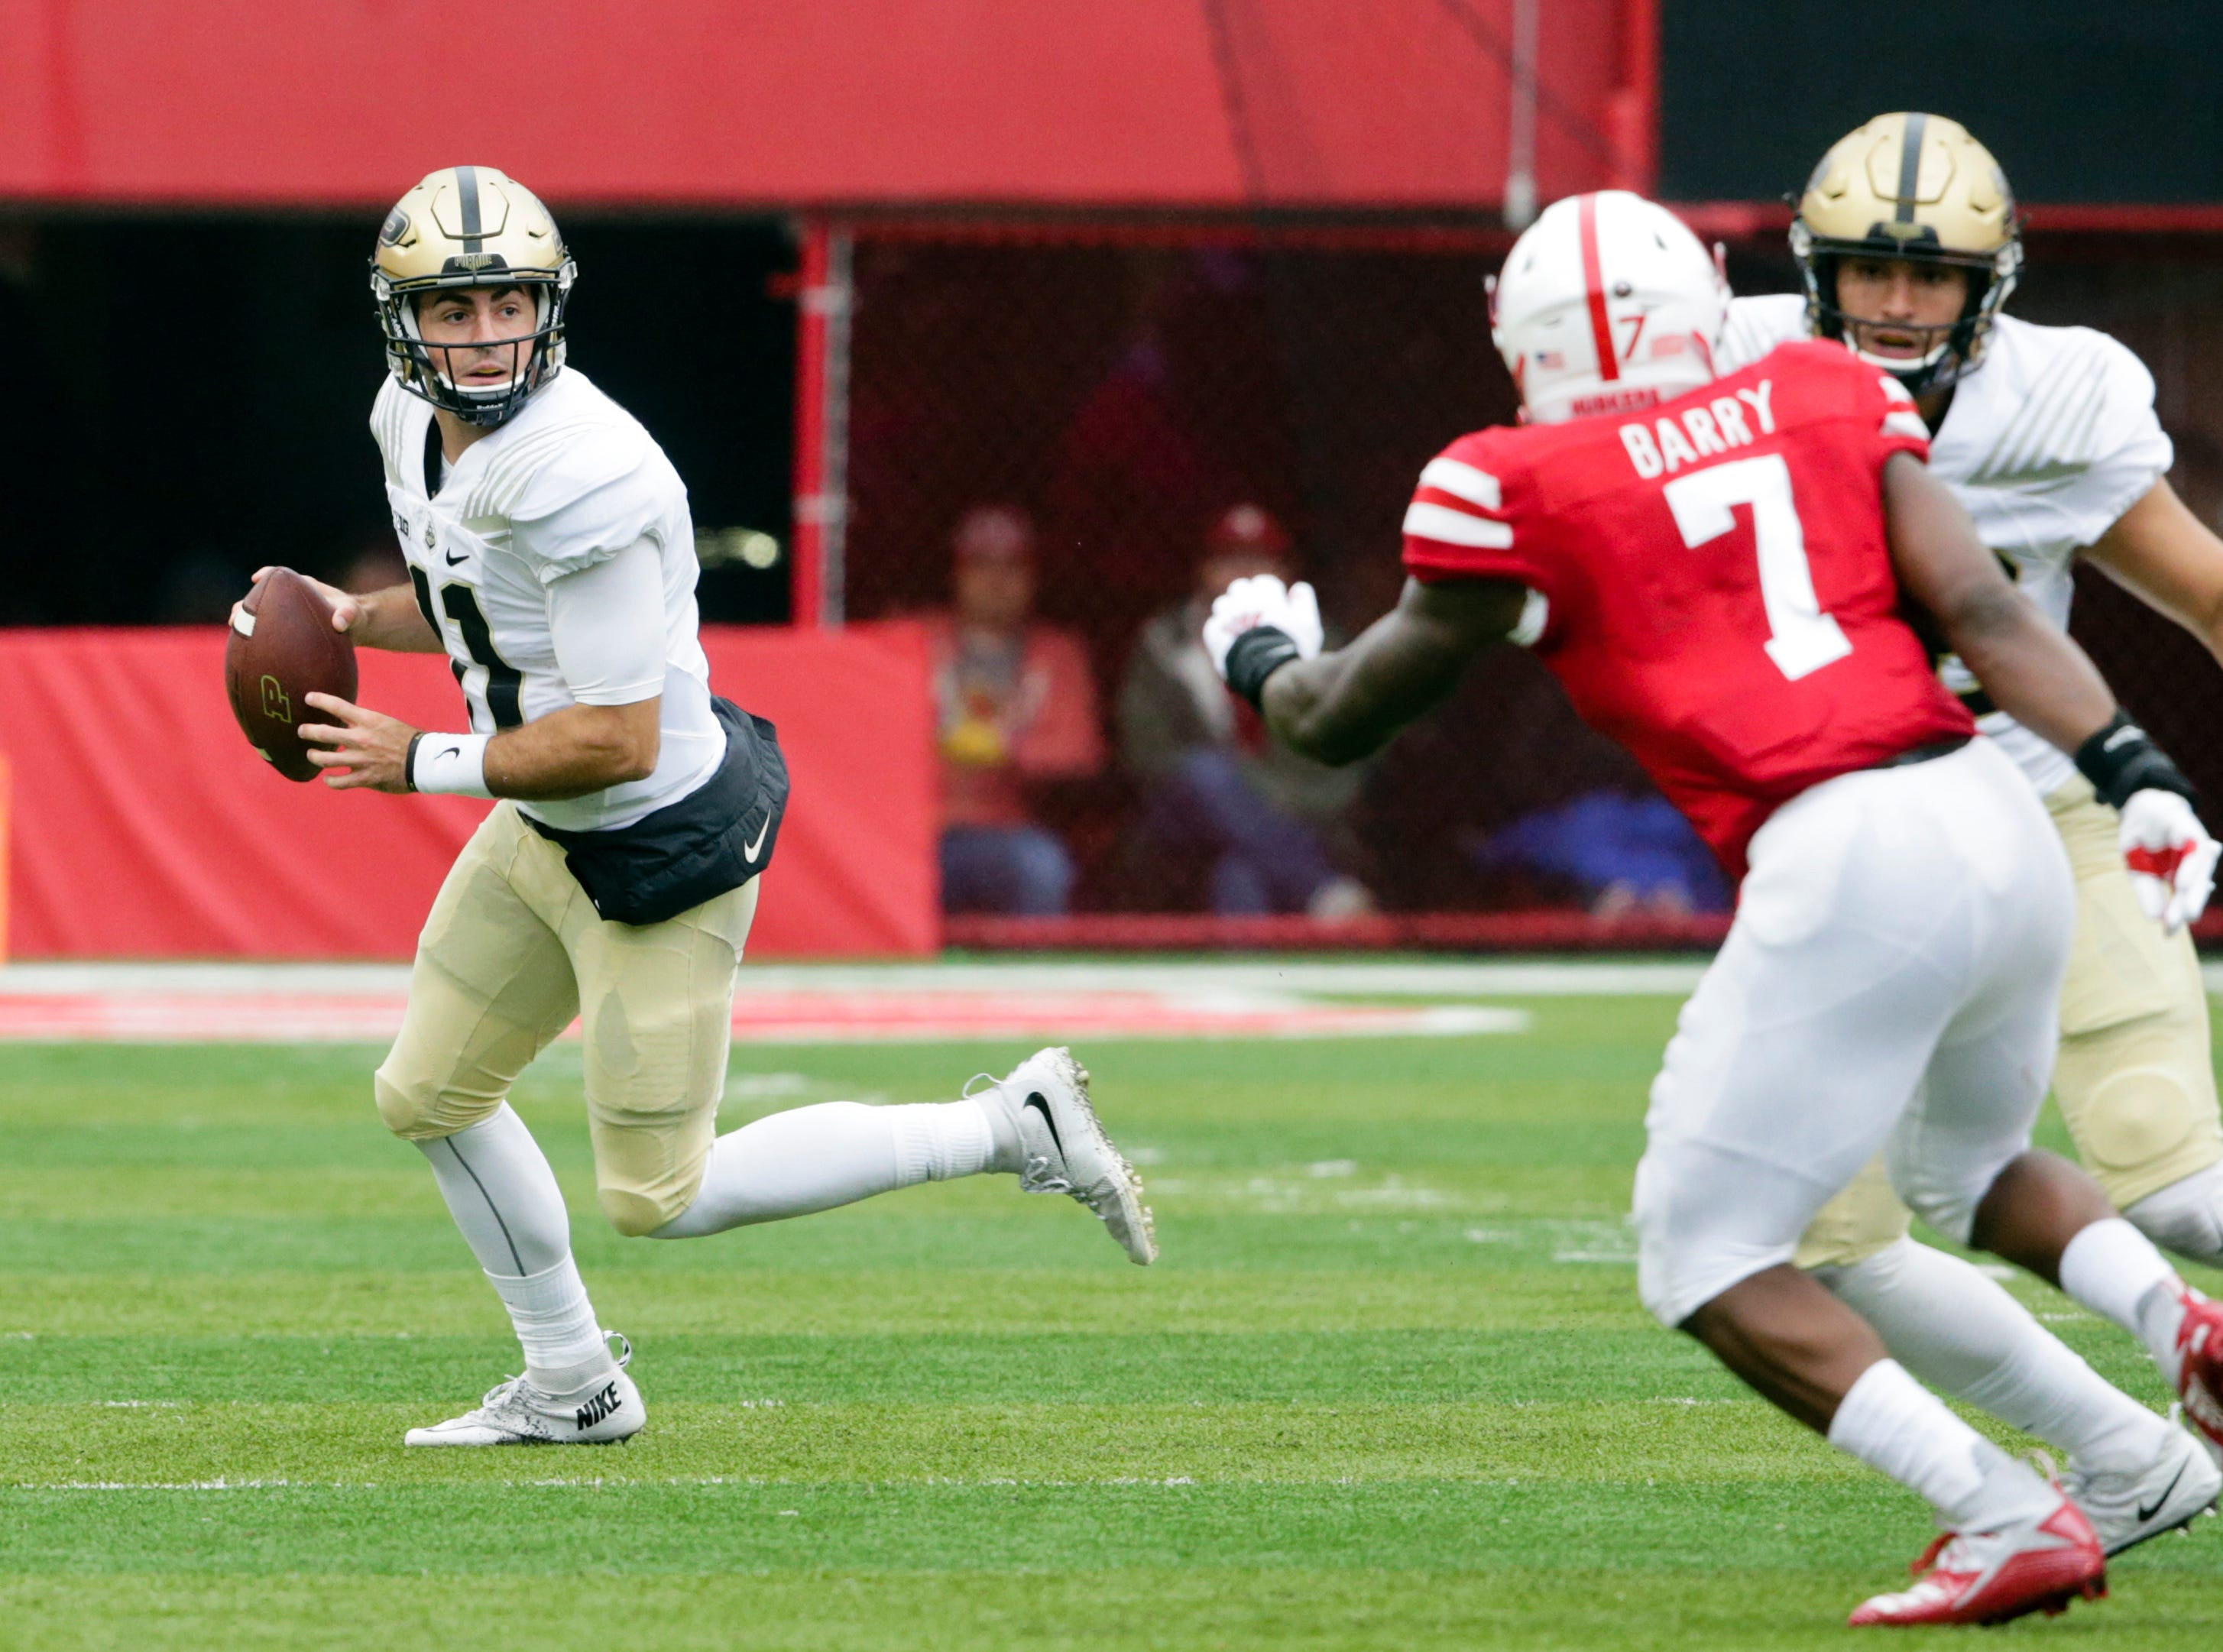 Purdue quarterback David Blough (11) looks for a receiver during the first half of an NCAA college football game against Nebraska in Lincoln, Neb., Saturday, Sept. 29, 2018. (AP Photo/Nati Harnik)